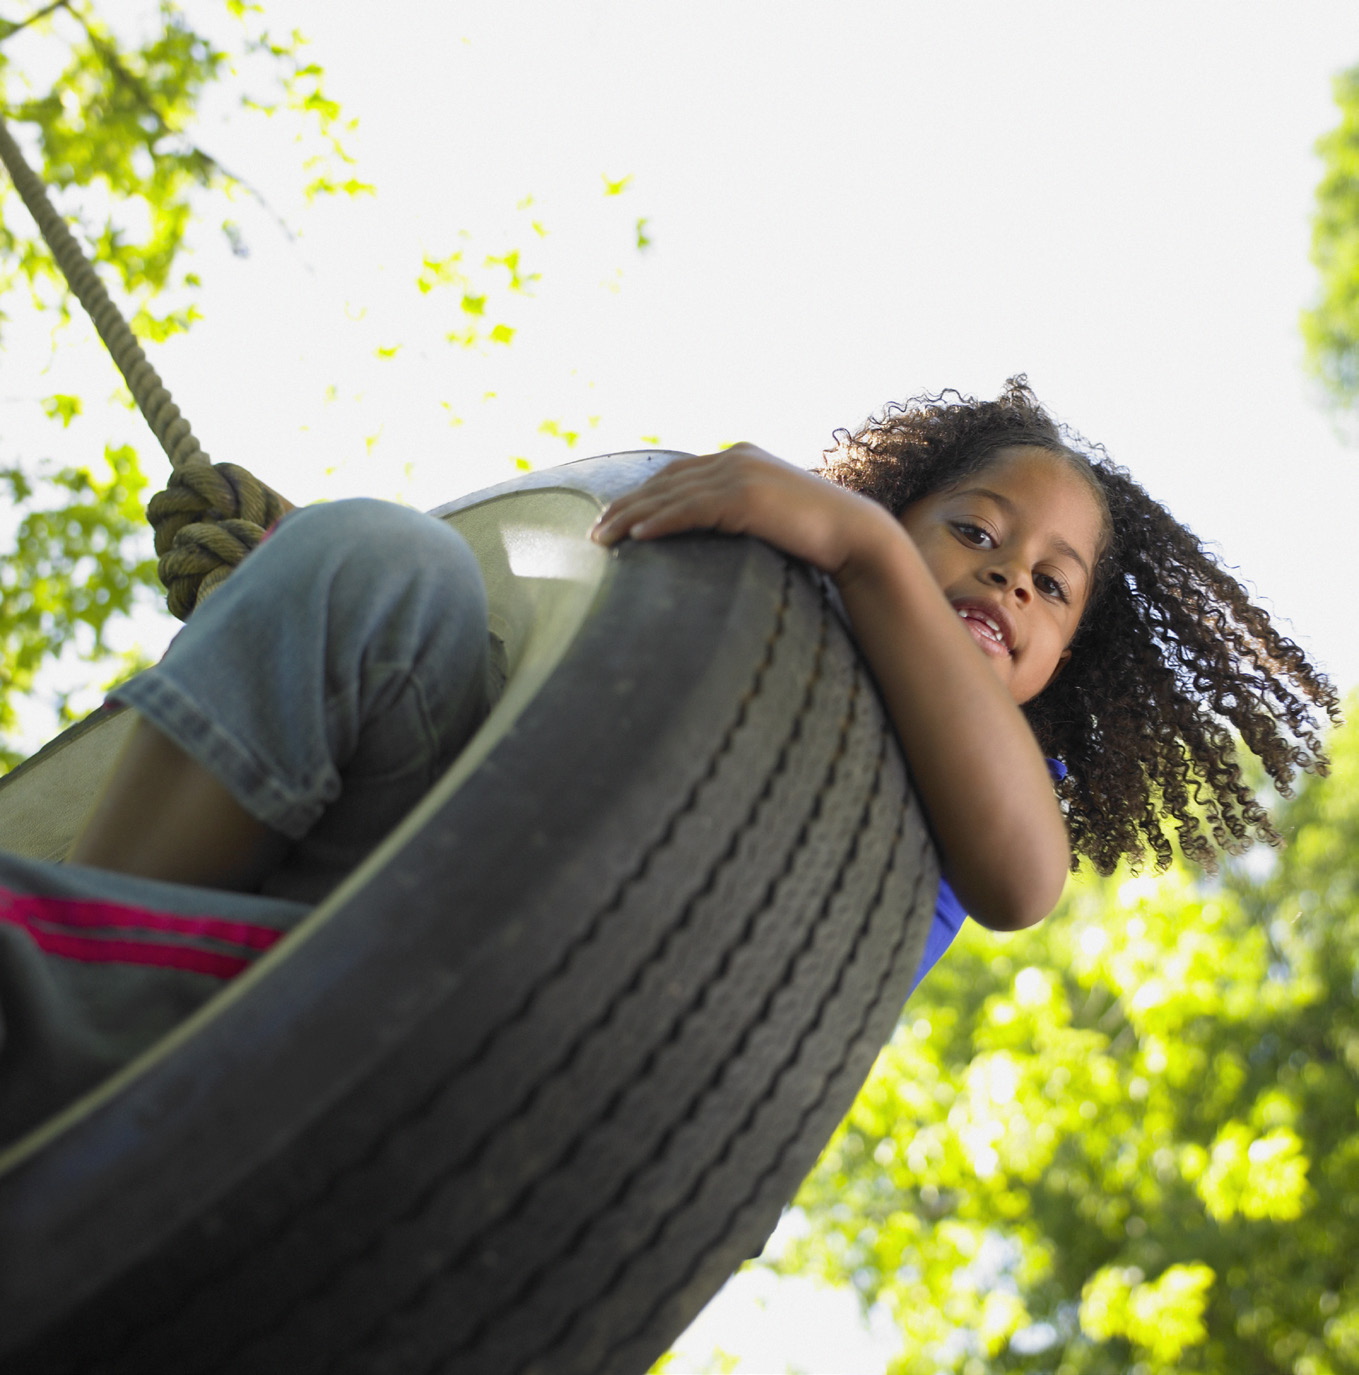 Young girl swinging on tire swing